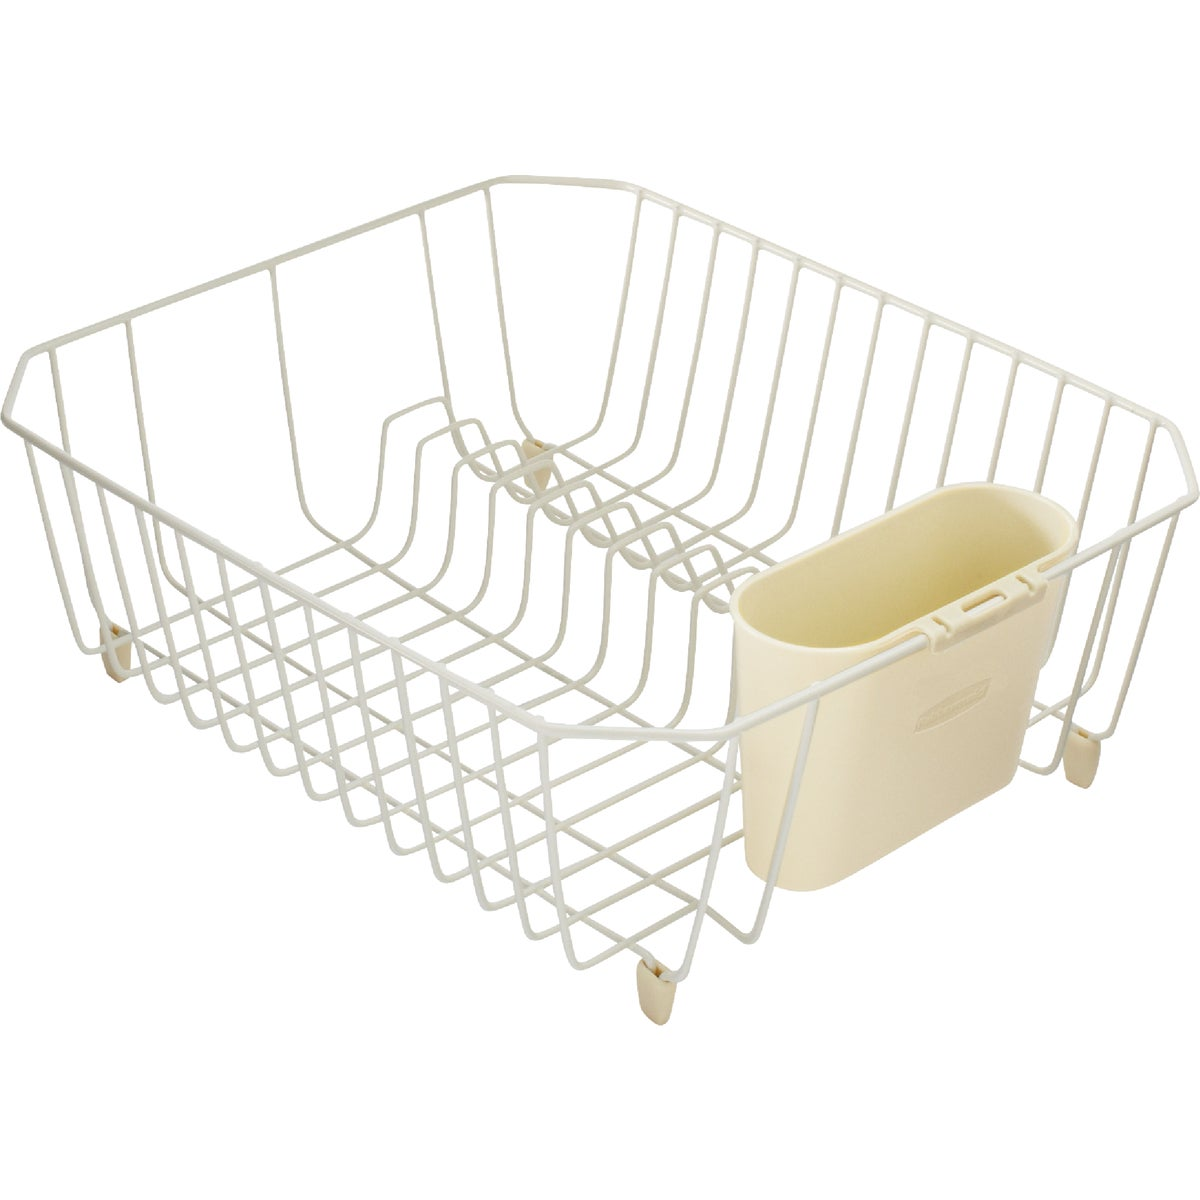 BISQUE TWIN DISH DRAINER - 6008-AR-BISQU by Rubbermaid Home